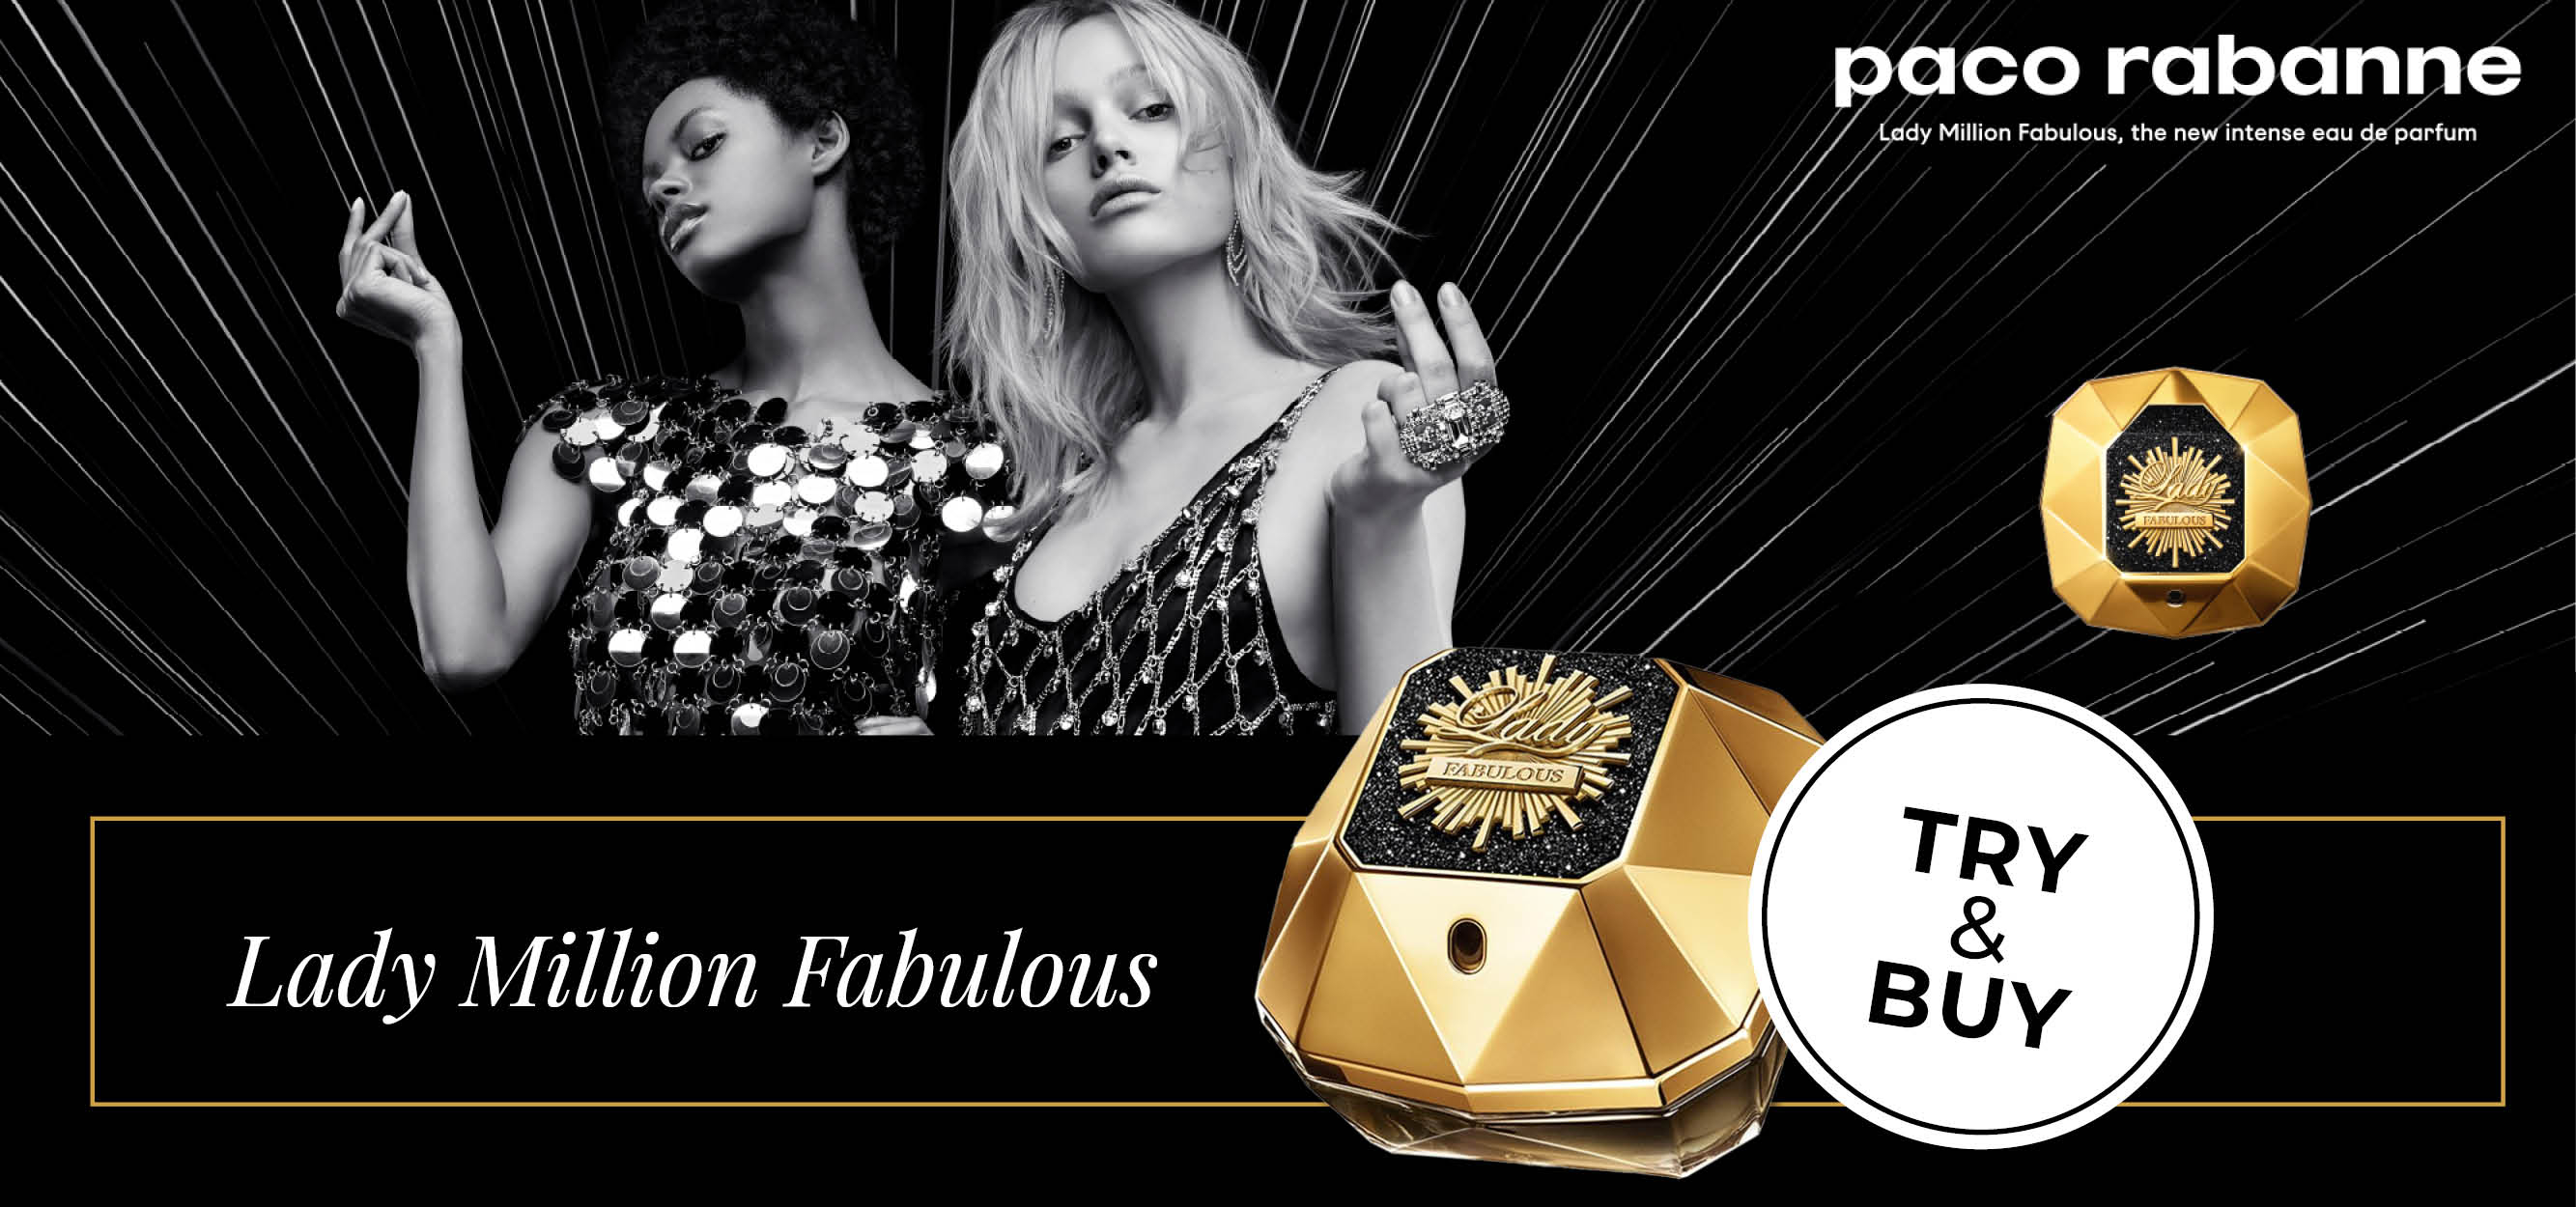 TRY&BUY - Lady Million Fabulous von Paco Rabanne bei CosmeticExpress